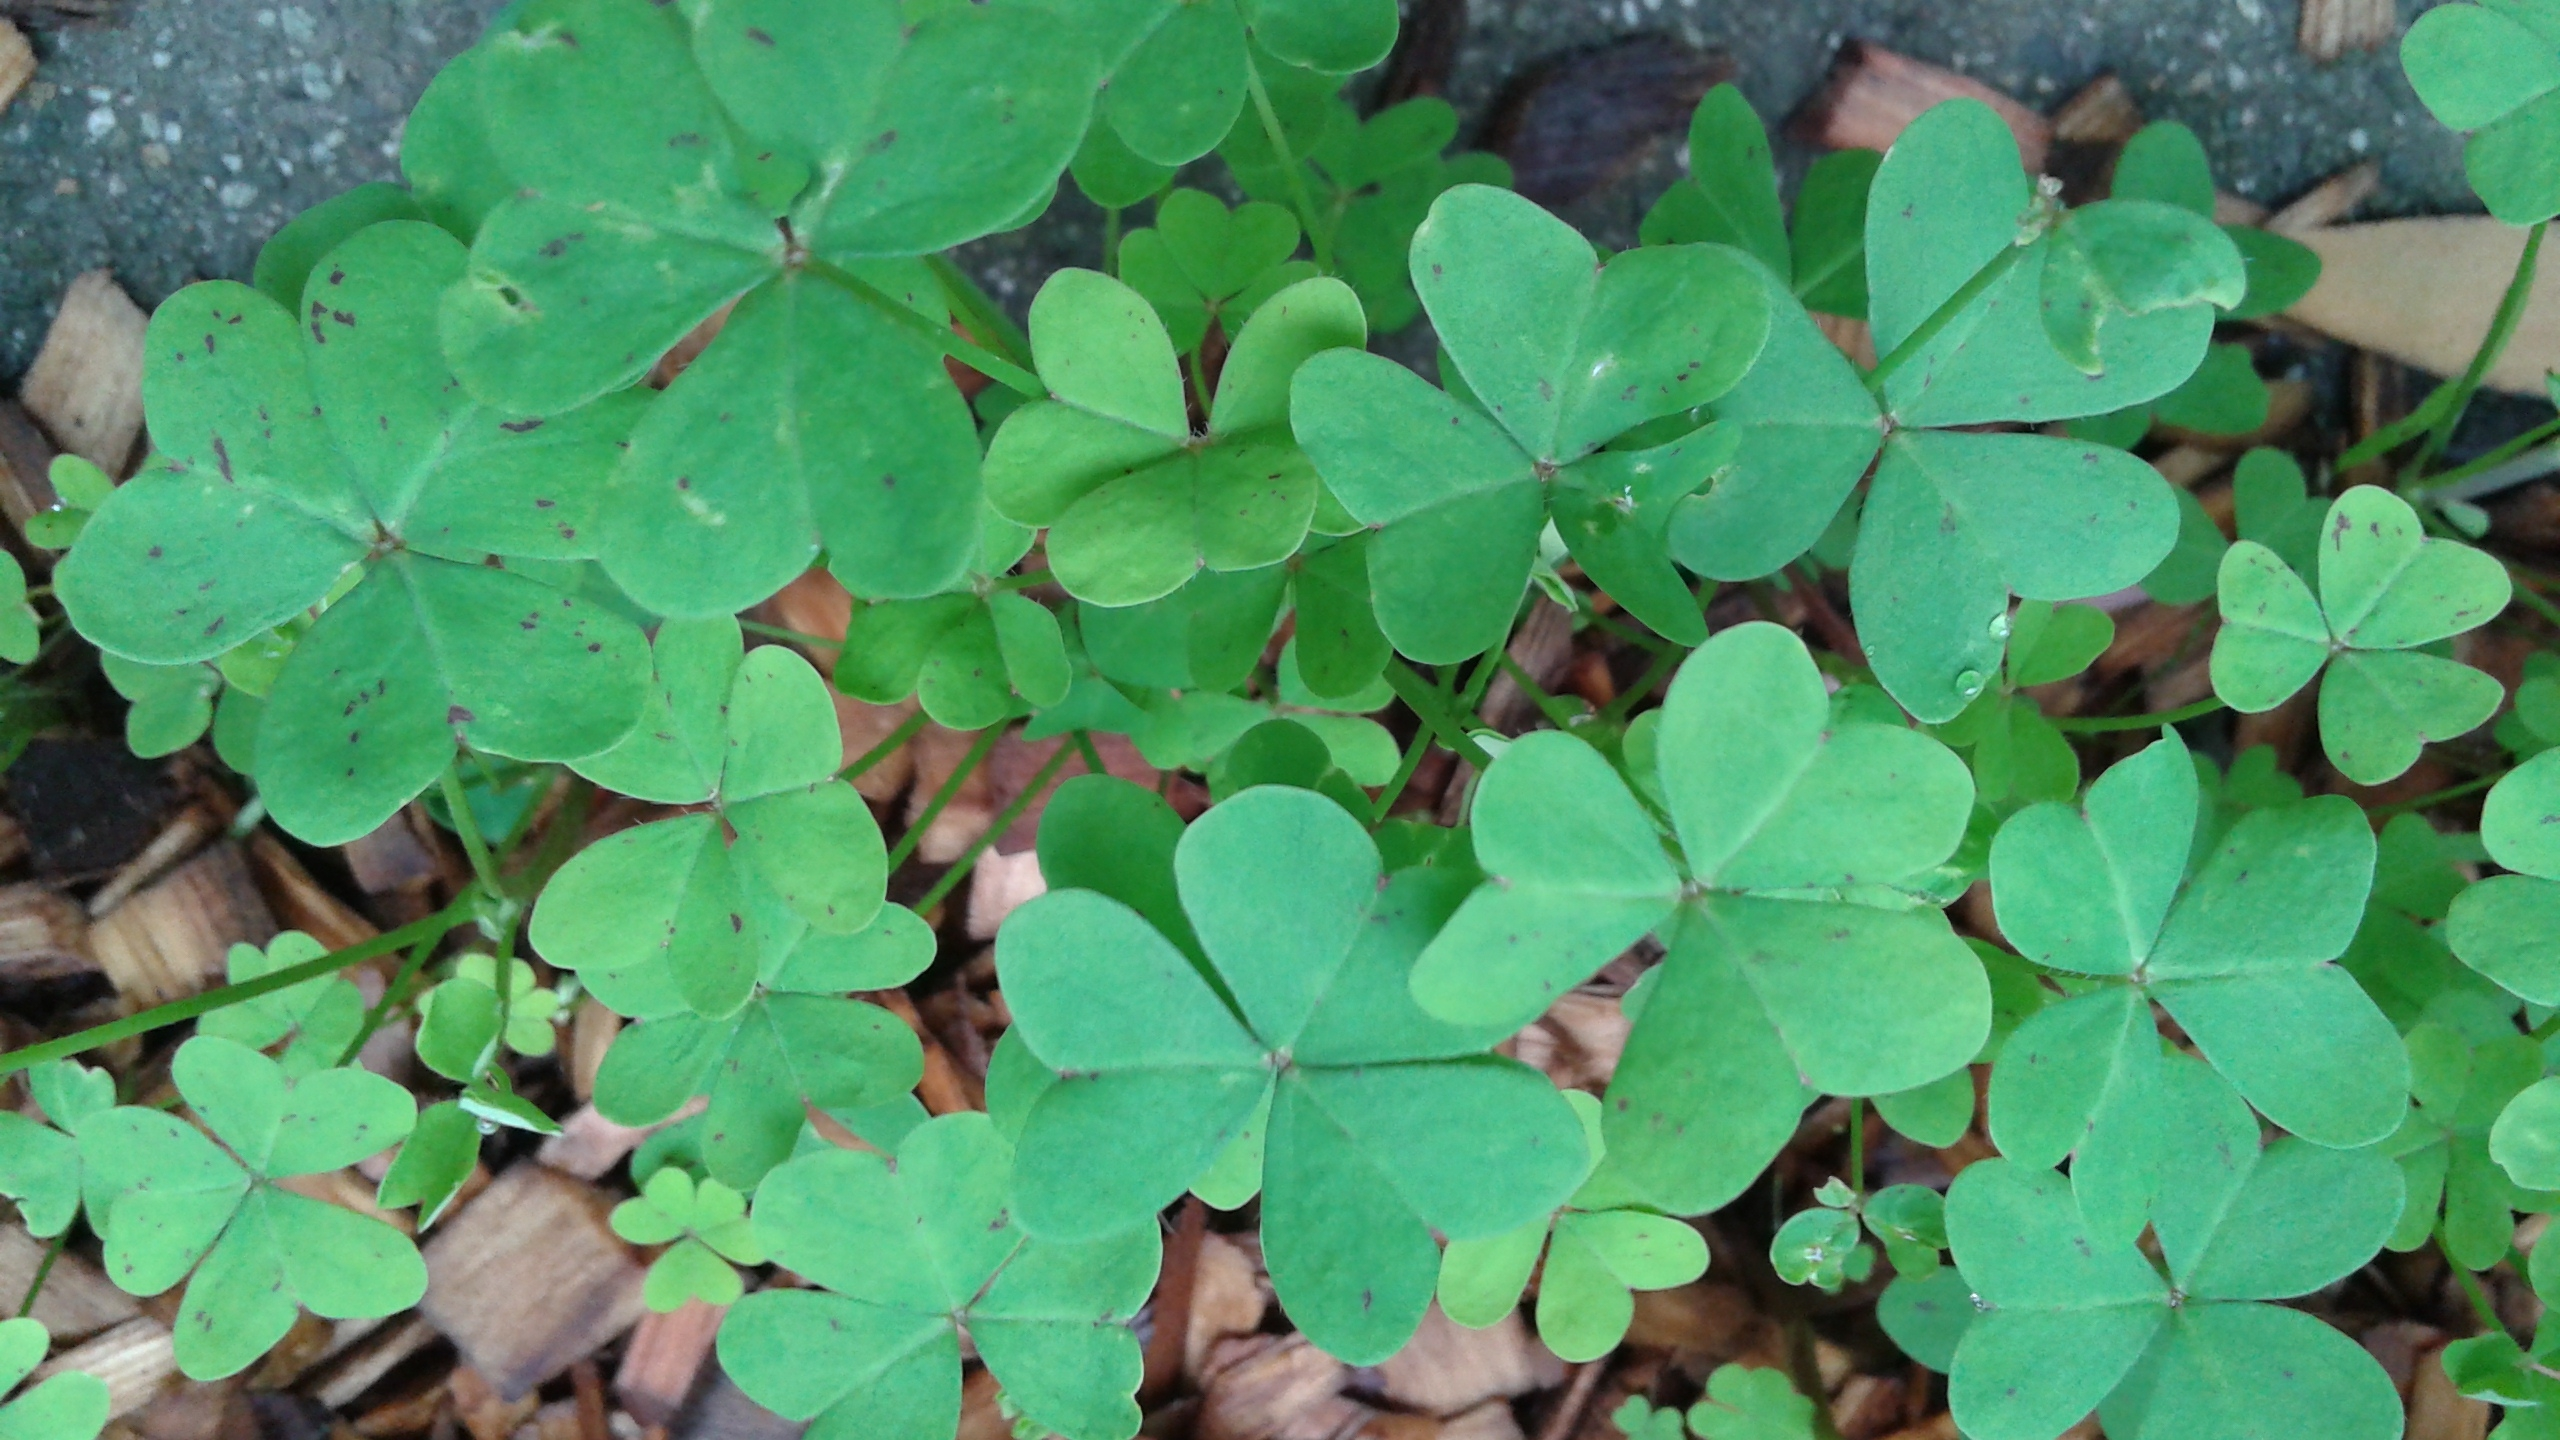 Thank You So Much For Sending The Excellent Photos Of Your Yard And Weeds They Were Valuable In Identifying Clover Like Plant As Bermuda Ercup